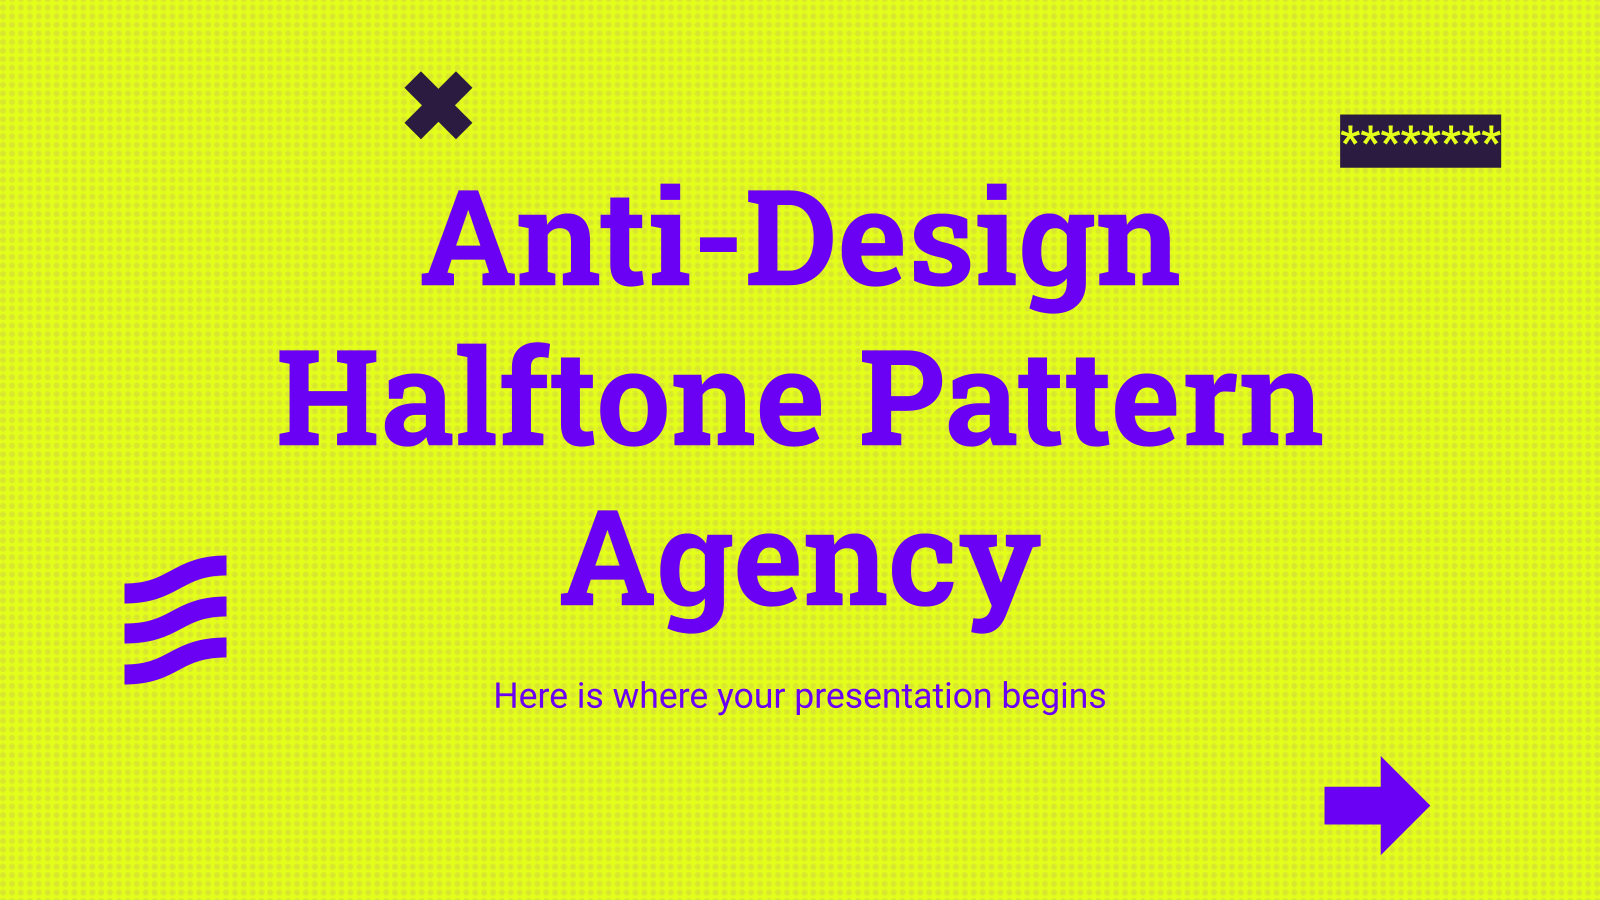 Anti-Design Halftone Pattern Agency presentation template